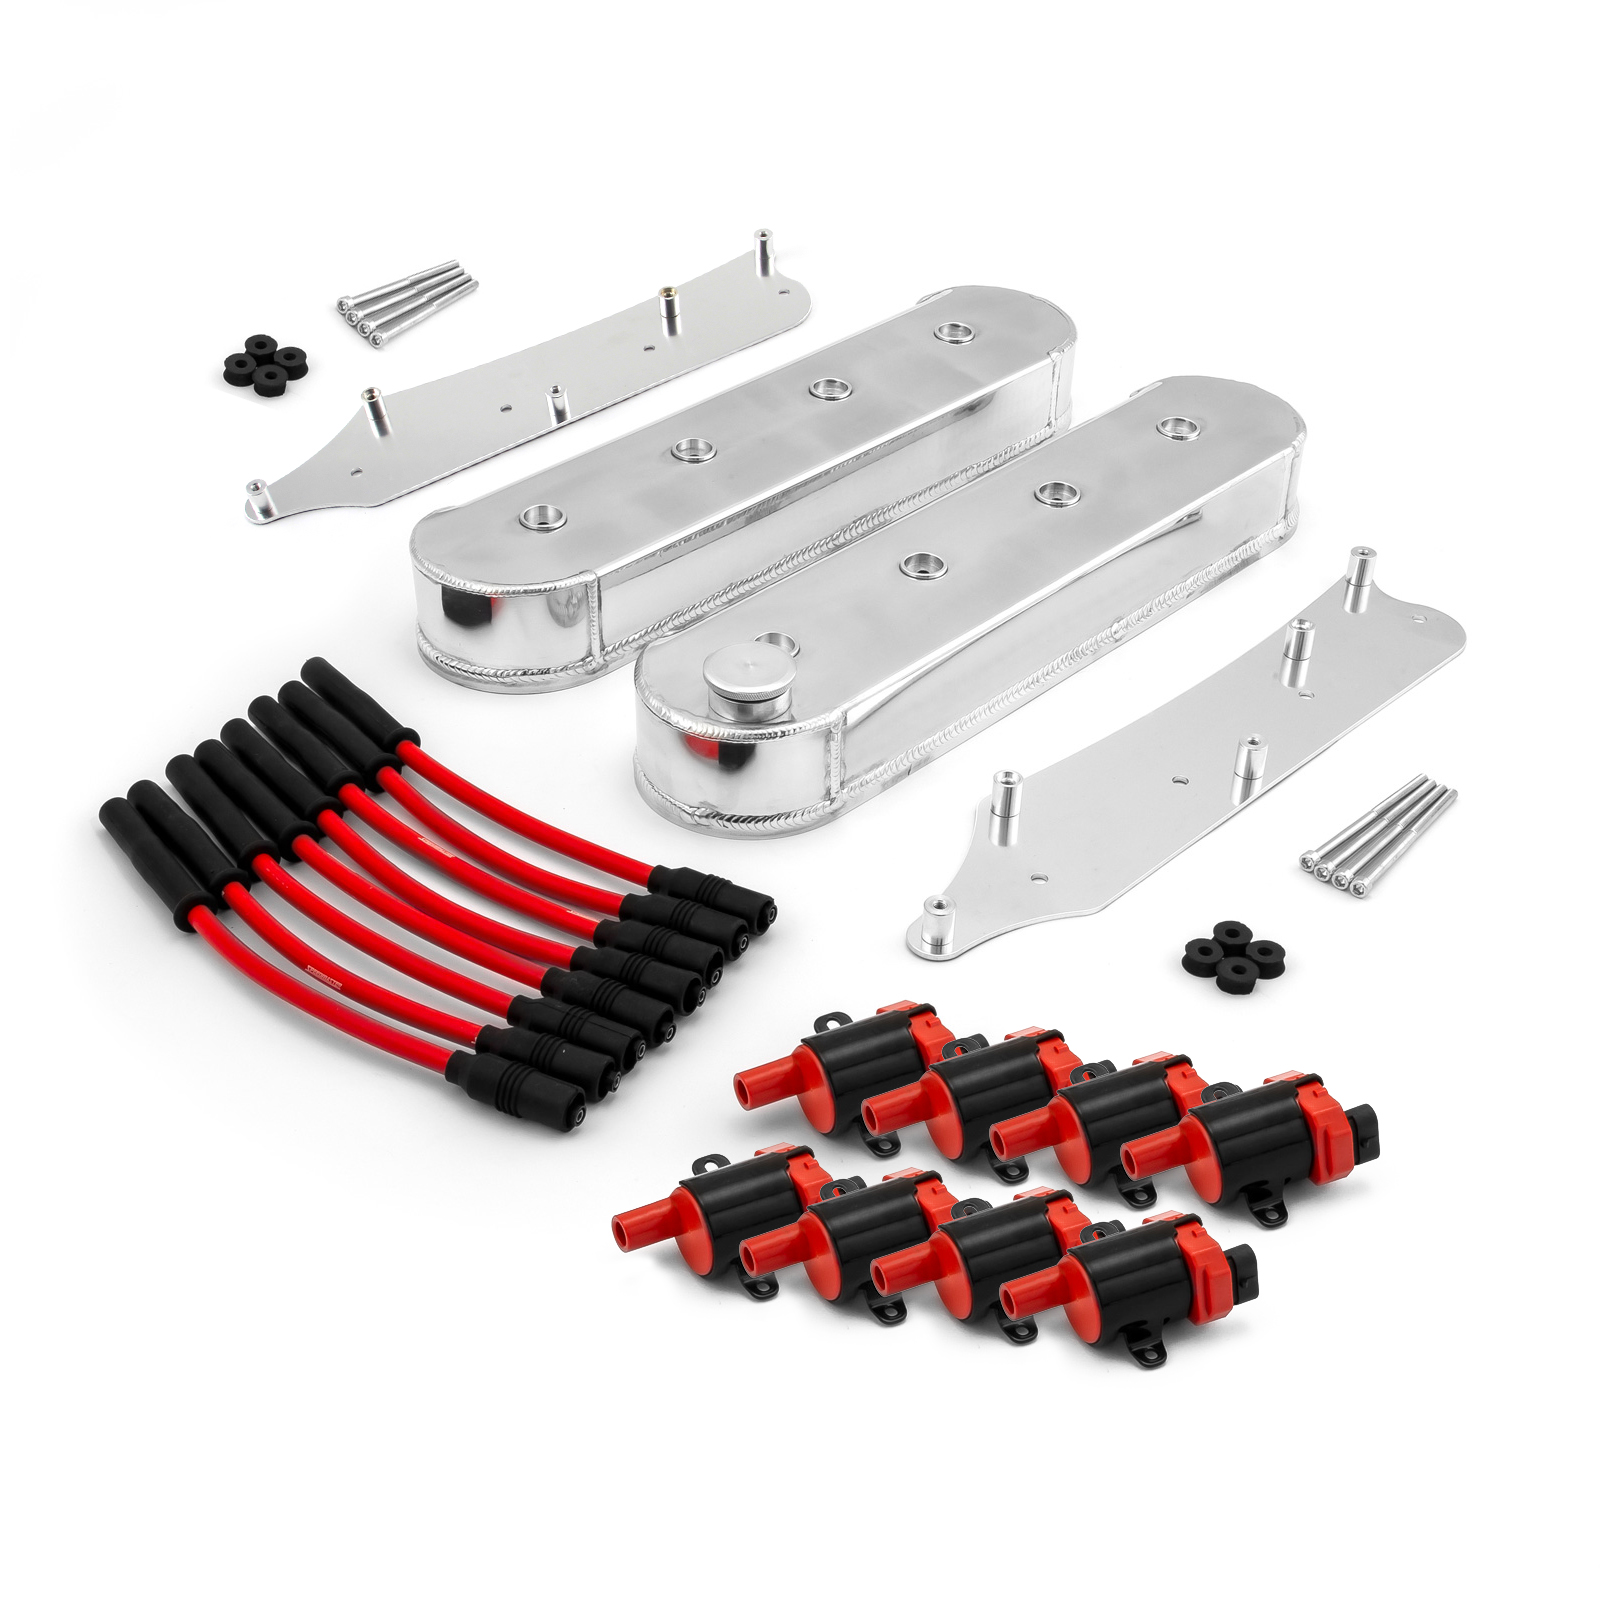 PCE® PCE314.1251 Chevy LS1 LS2 LS3 LS6 LS7 Fabricated Valve Covers Coil Packs Wire Combo Kit